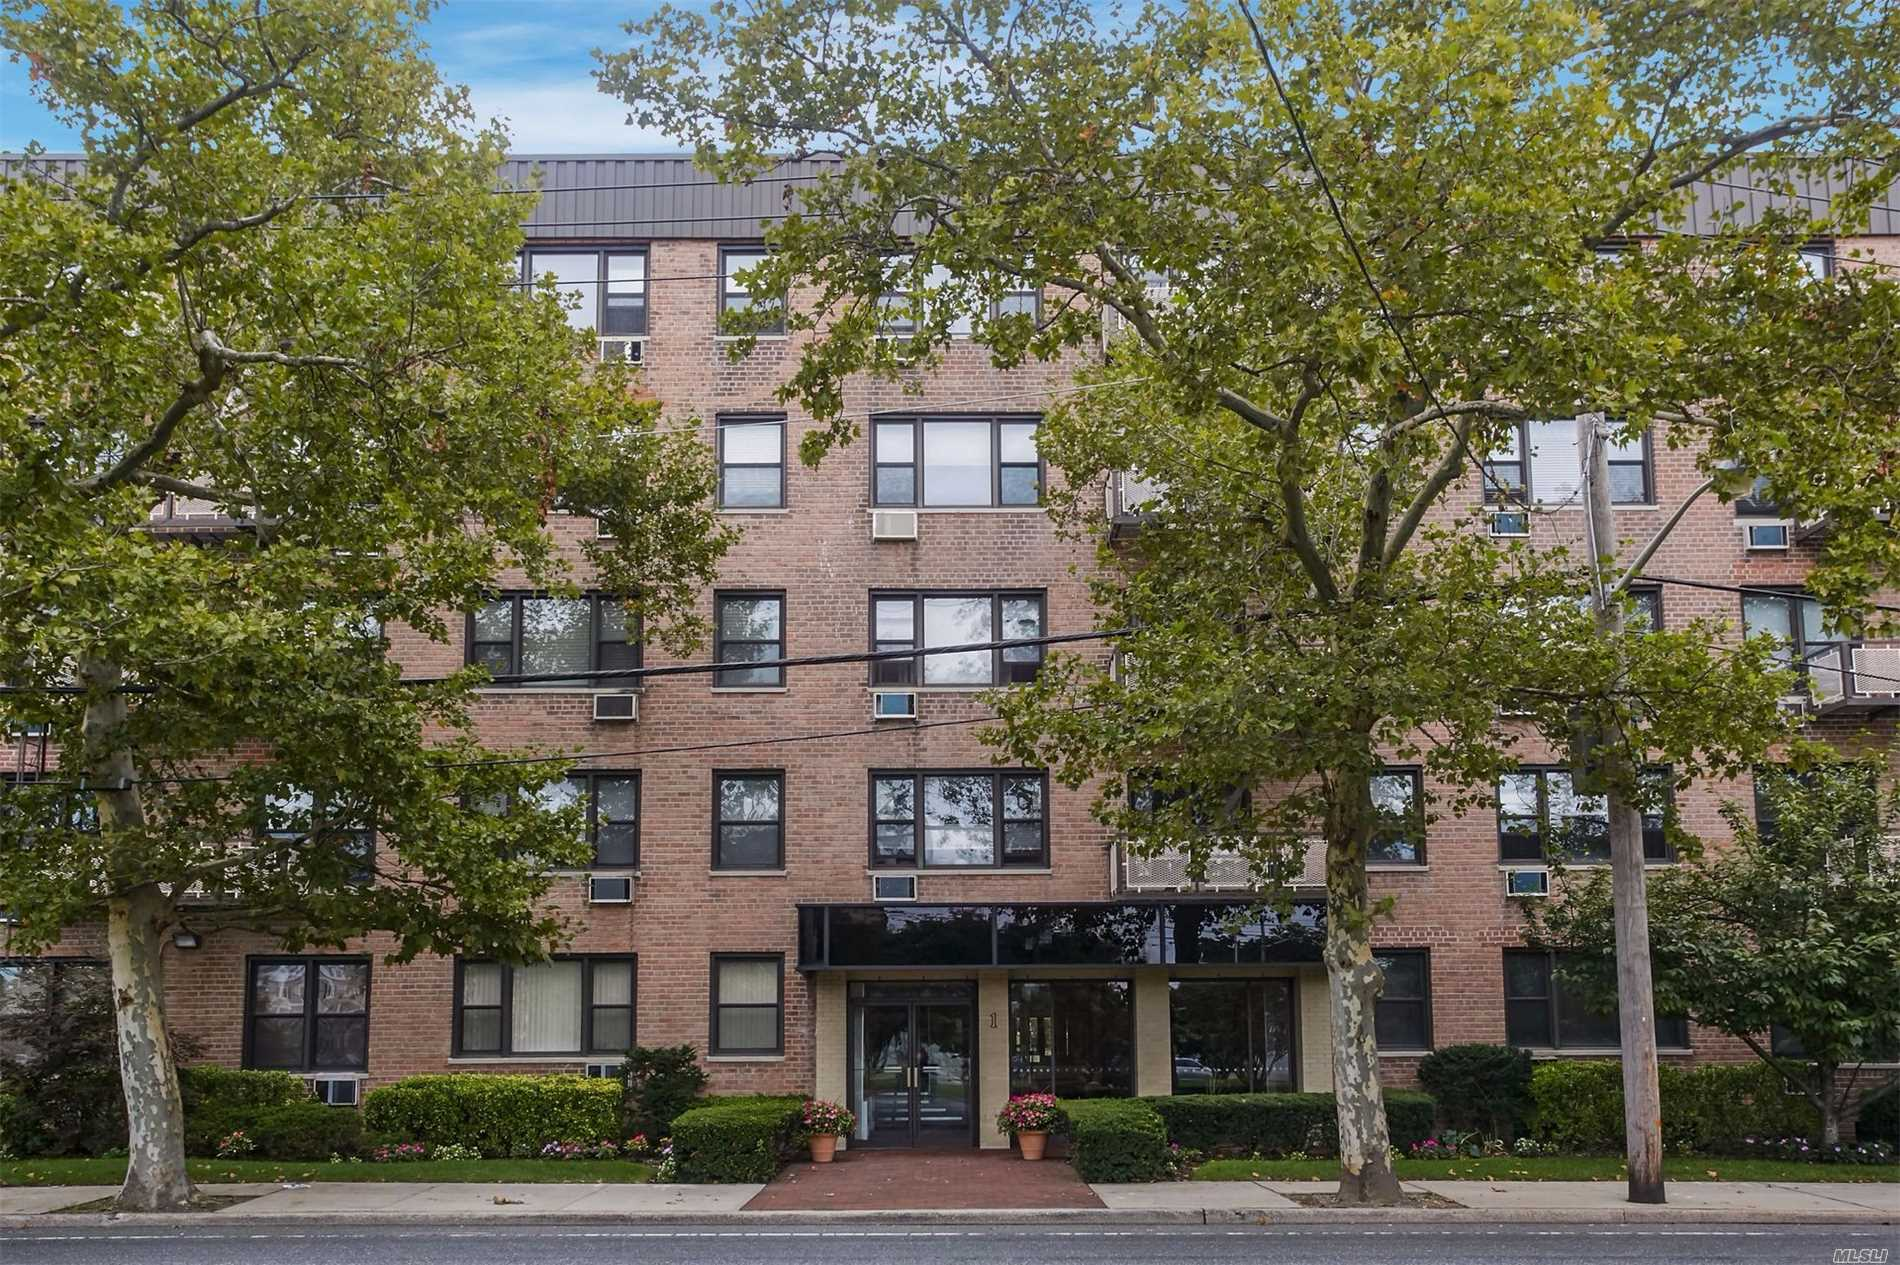 Beautiful 1 Bedroom 1 Bath Apartment W/ Courtyard Views In Birchwood Court! Located In 24 Hr Gated Community W/ New Laundry Facilities. Apartment Comes With A Transferrable Parking Spot! Close Proximity To Lirr, Shopping And Restaurants. Must See!